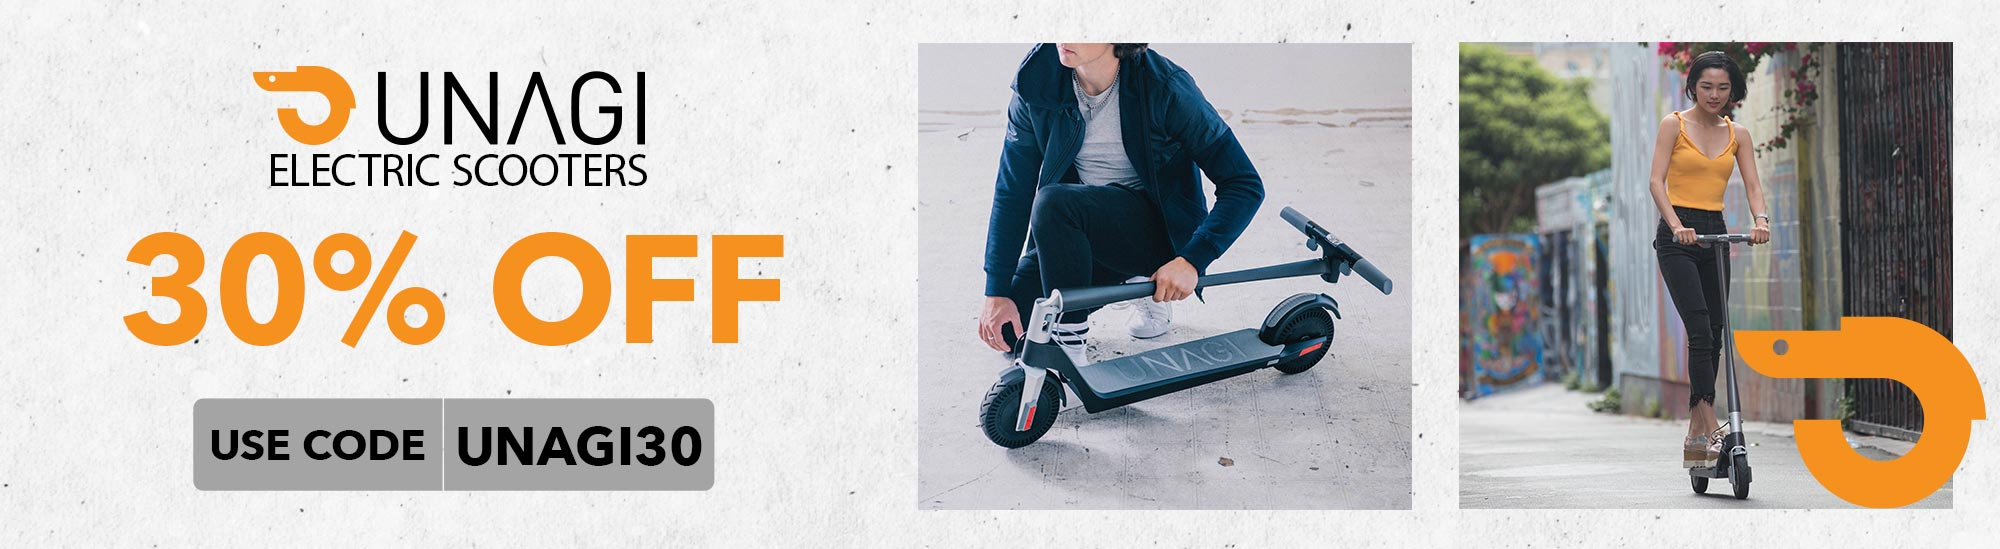 UNAGI ELECTRIC SCOOTERS 30% OFF